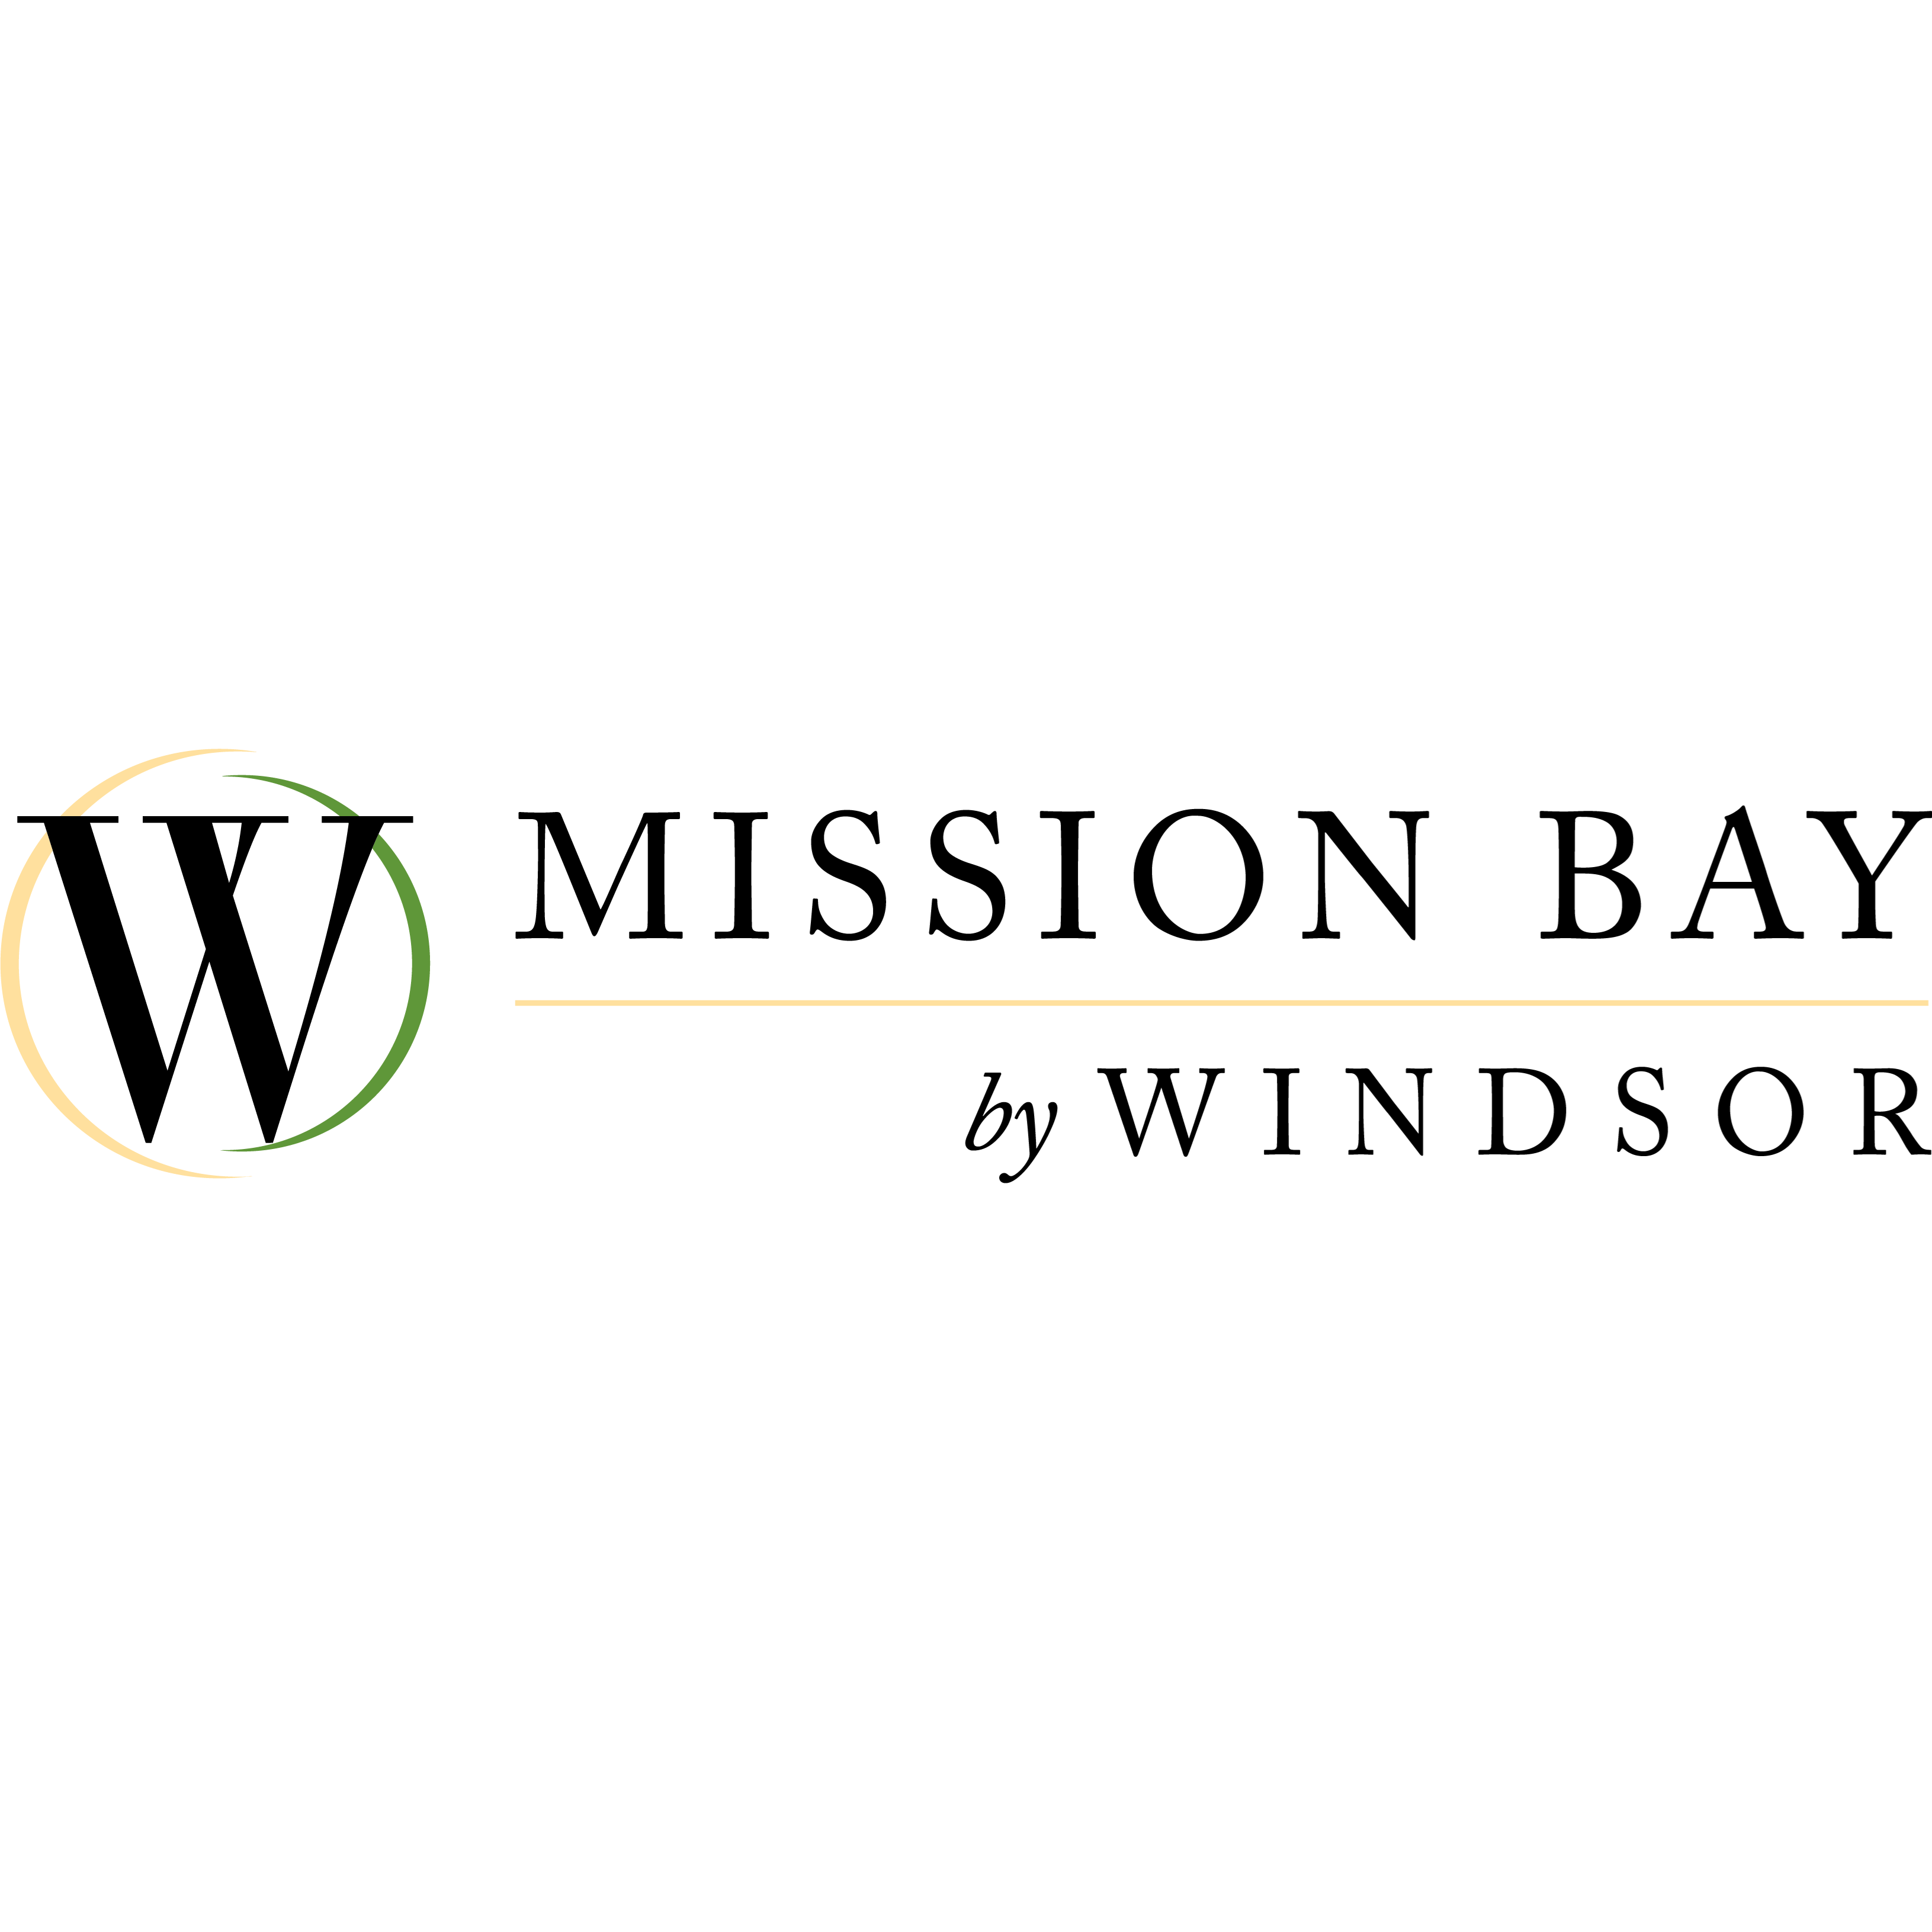 Mission Bay by Windsor